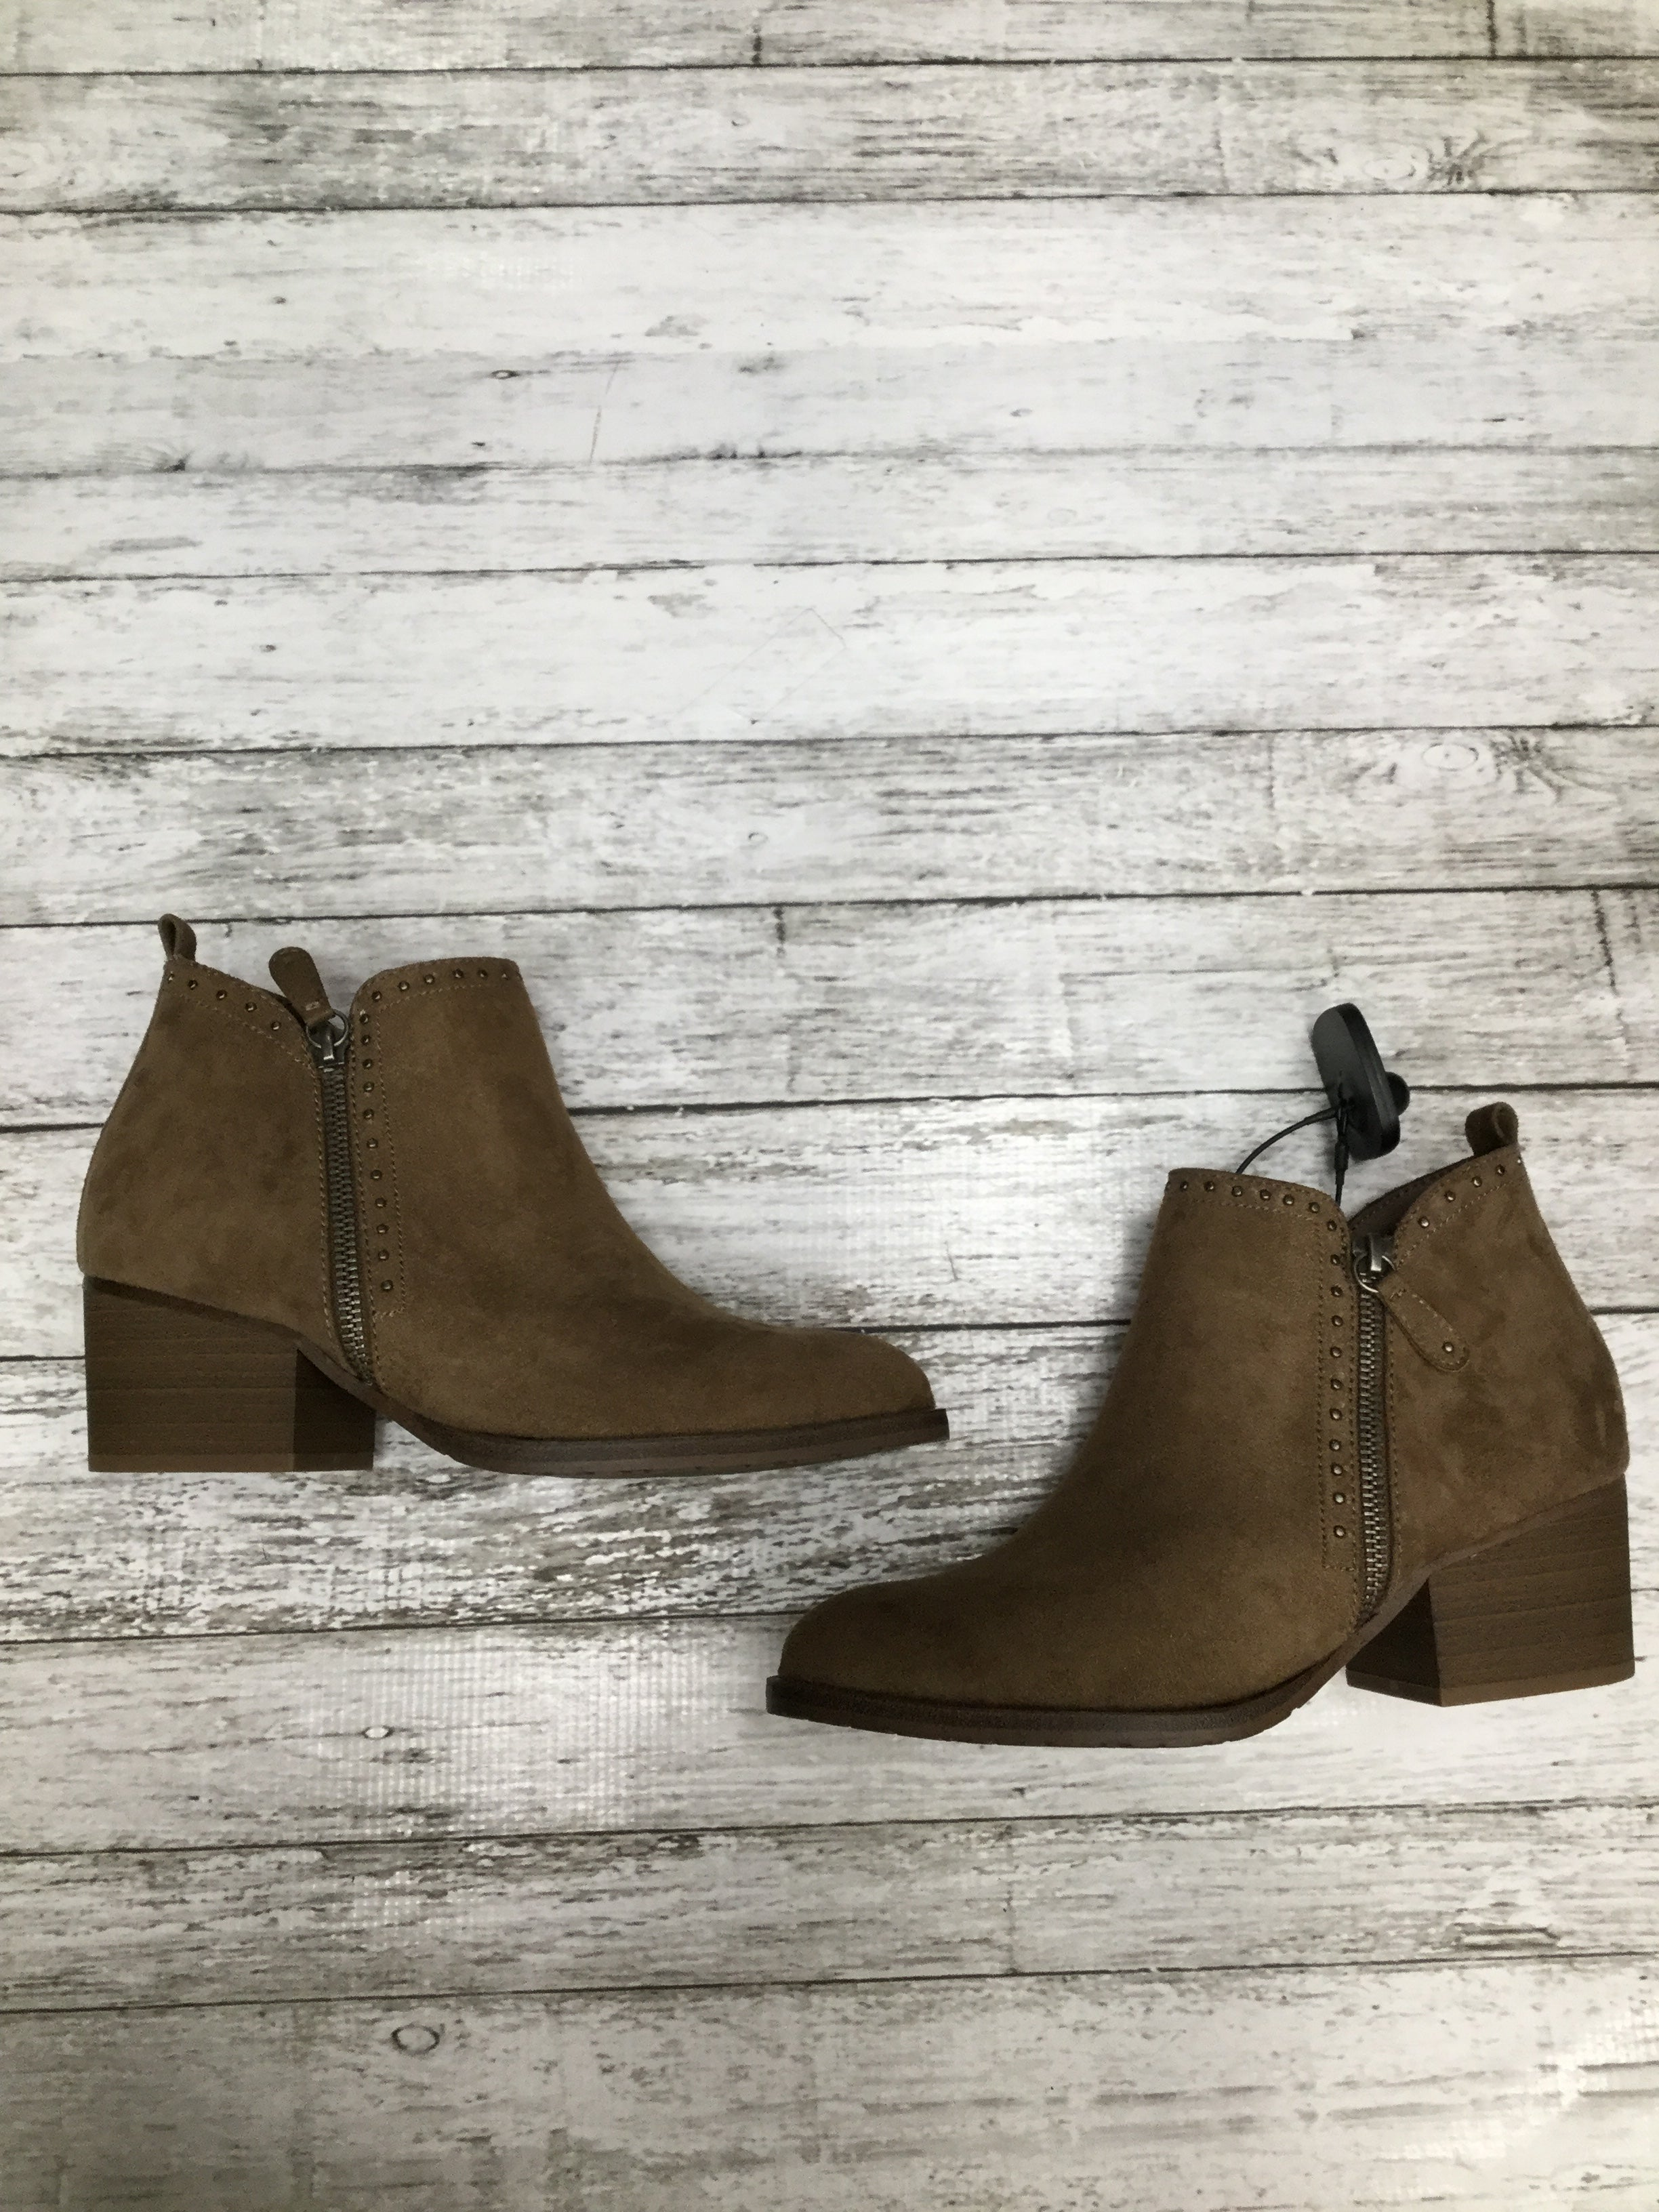 Primary Photo - BRAND: SONOMA , STYLE: BOOTS ANKLE, COLOR: CAMEL , SIZE: 7.5 , OTHER INFO: NEW! , SKU: 105-3221-8049